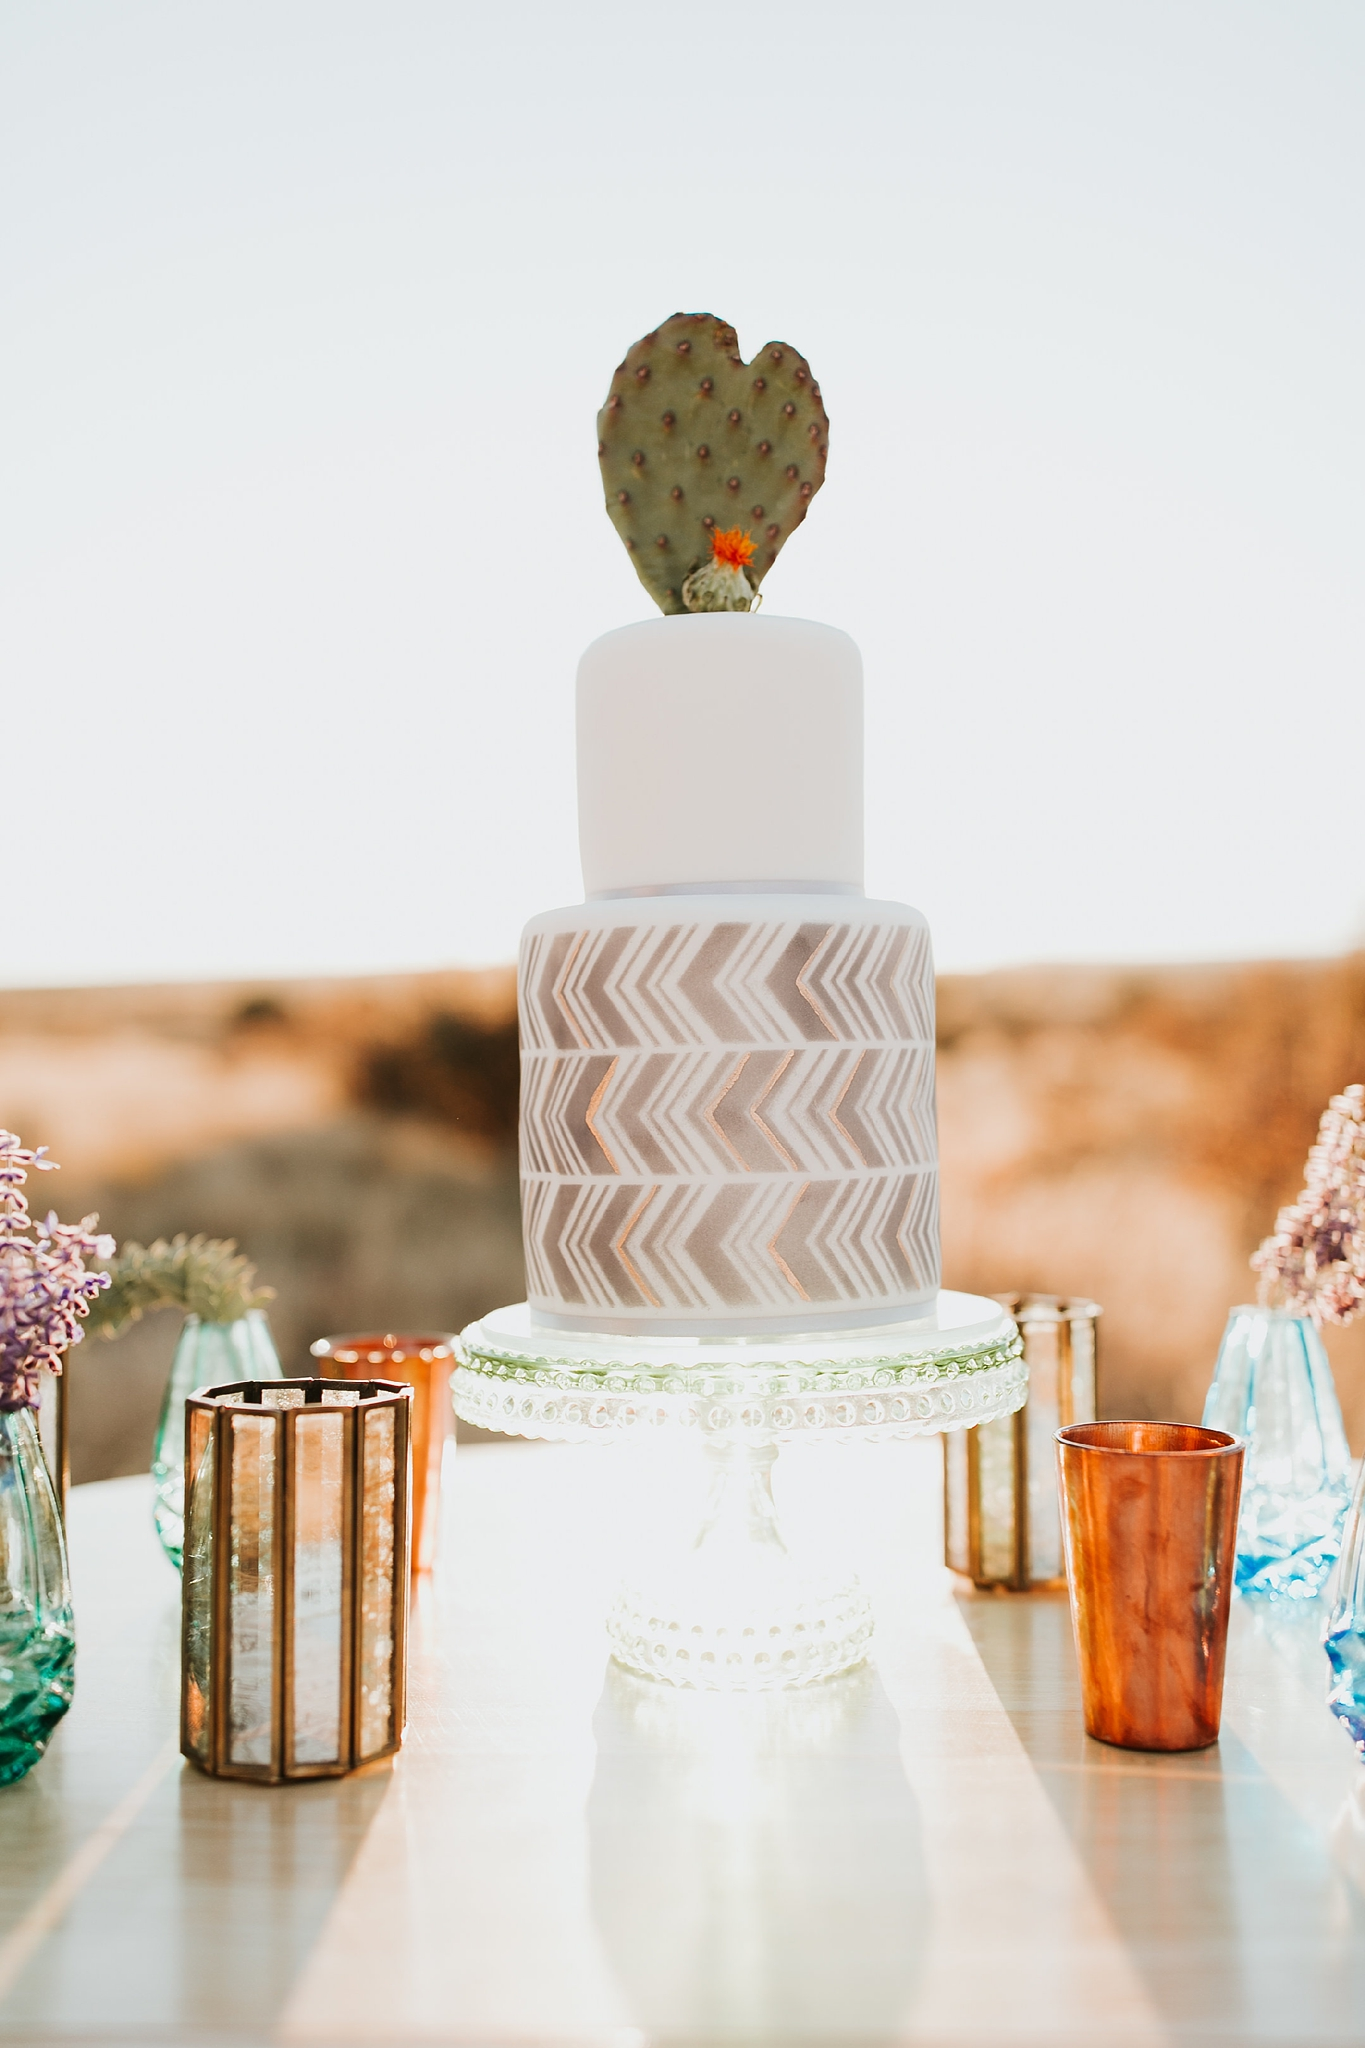 Alicia+lucia+photography+-+albuquerque+wedding+photographer+-+santa+fe+wedding+photography+-+new+mexico+wedding+photographer+-+wedding+reception+-+wedding+cake+-+wedding+sweets+-+maggies+cakes_0022.jpg